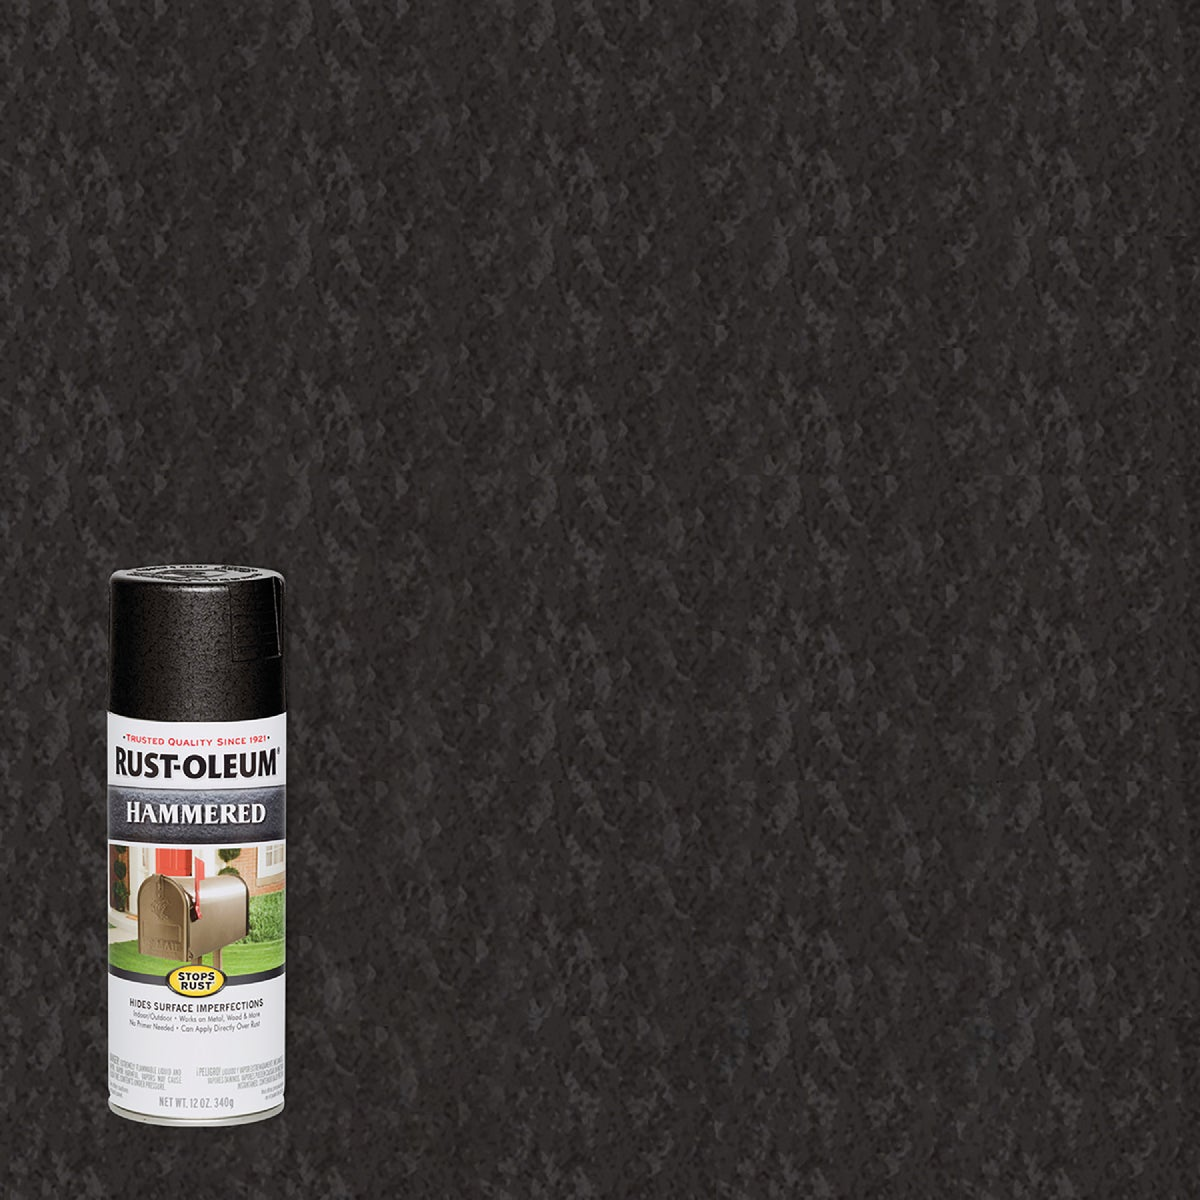 BLK HAMMERED SPRAY PAINT - 7215-830 by Rustoleum